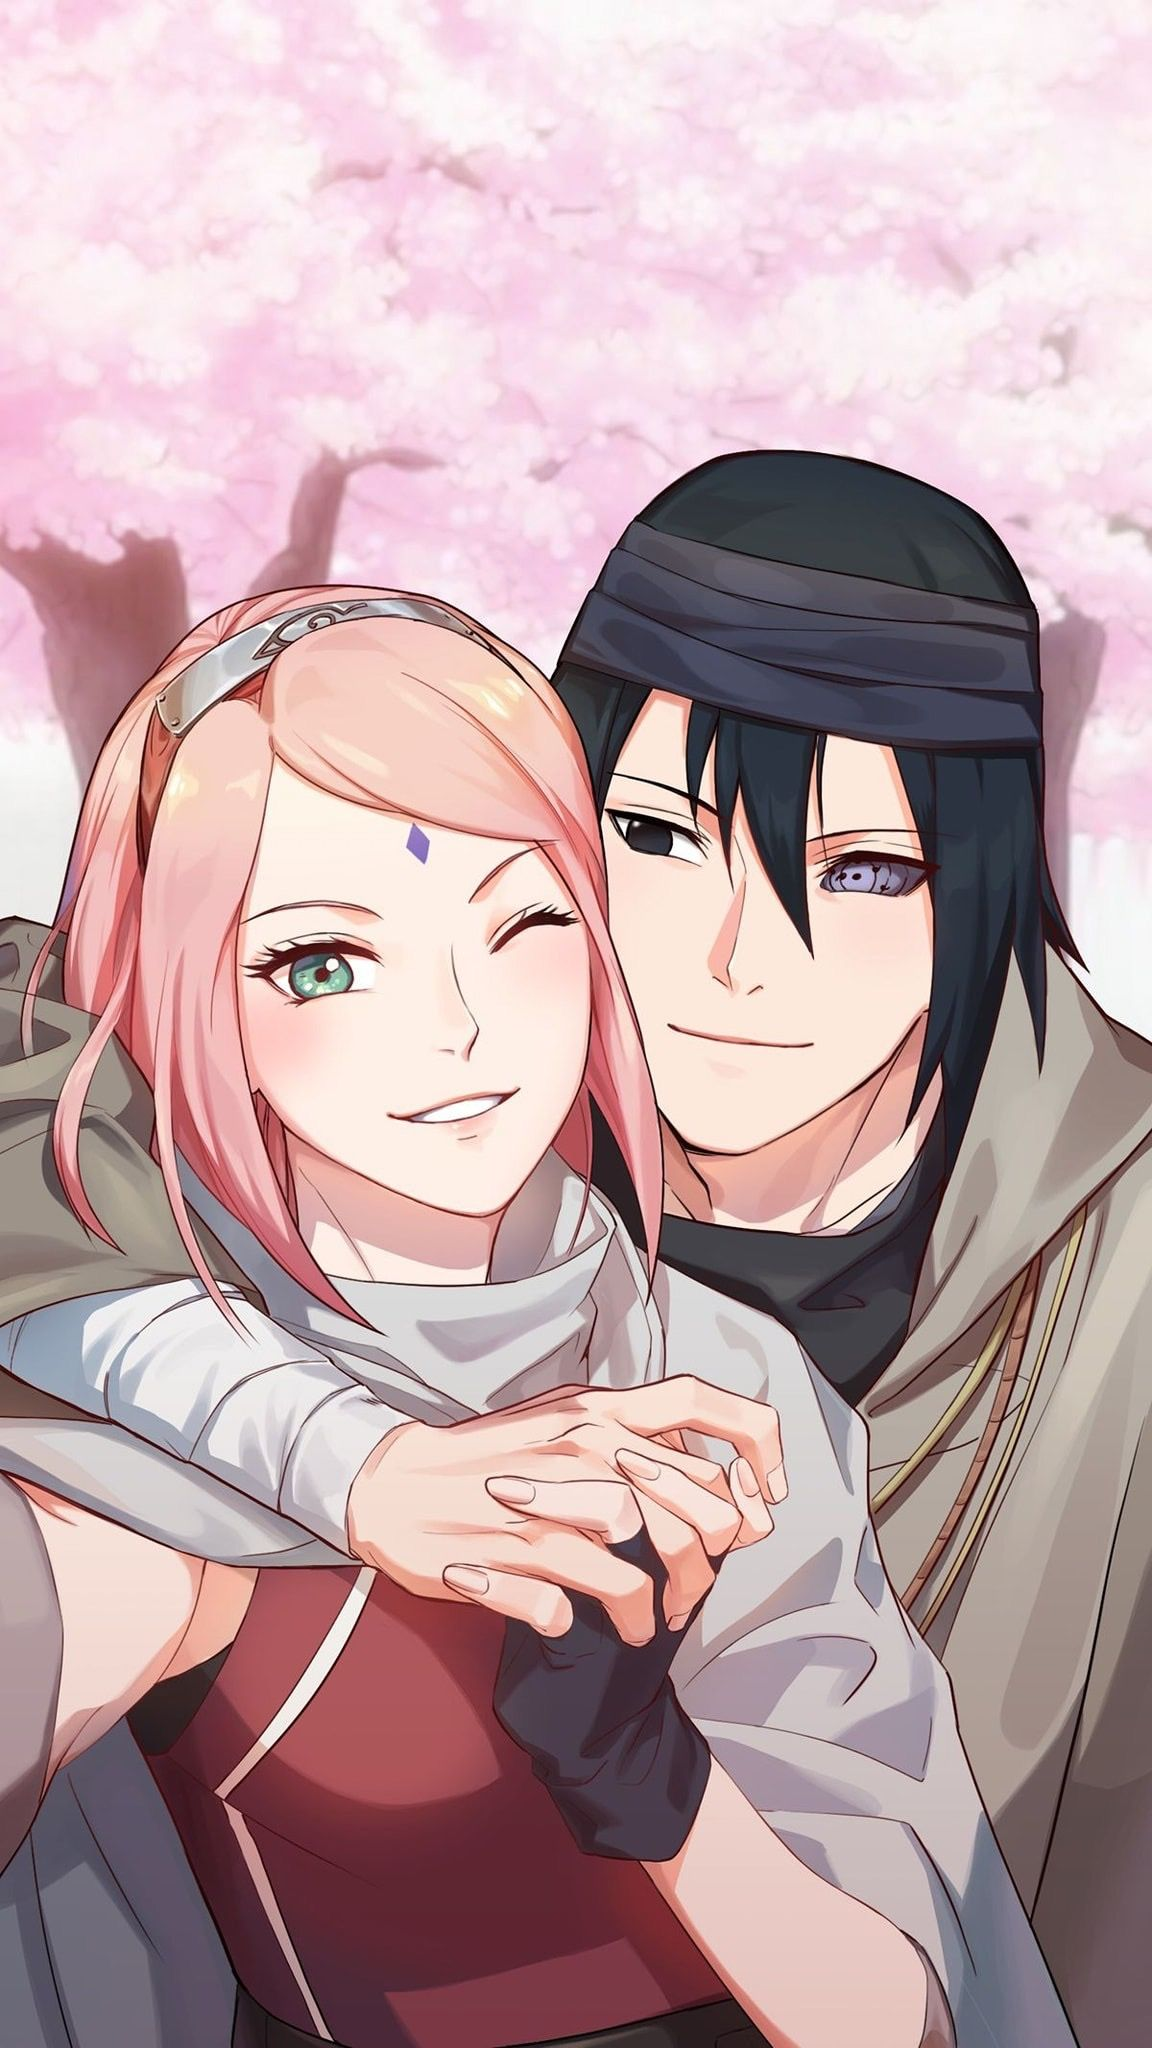 Pin By Madame A On Anime Wallpapers Naruto Shippuden Anime Sasusaku Sakura And Sasuke